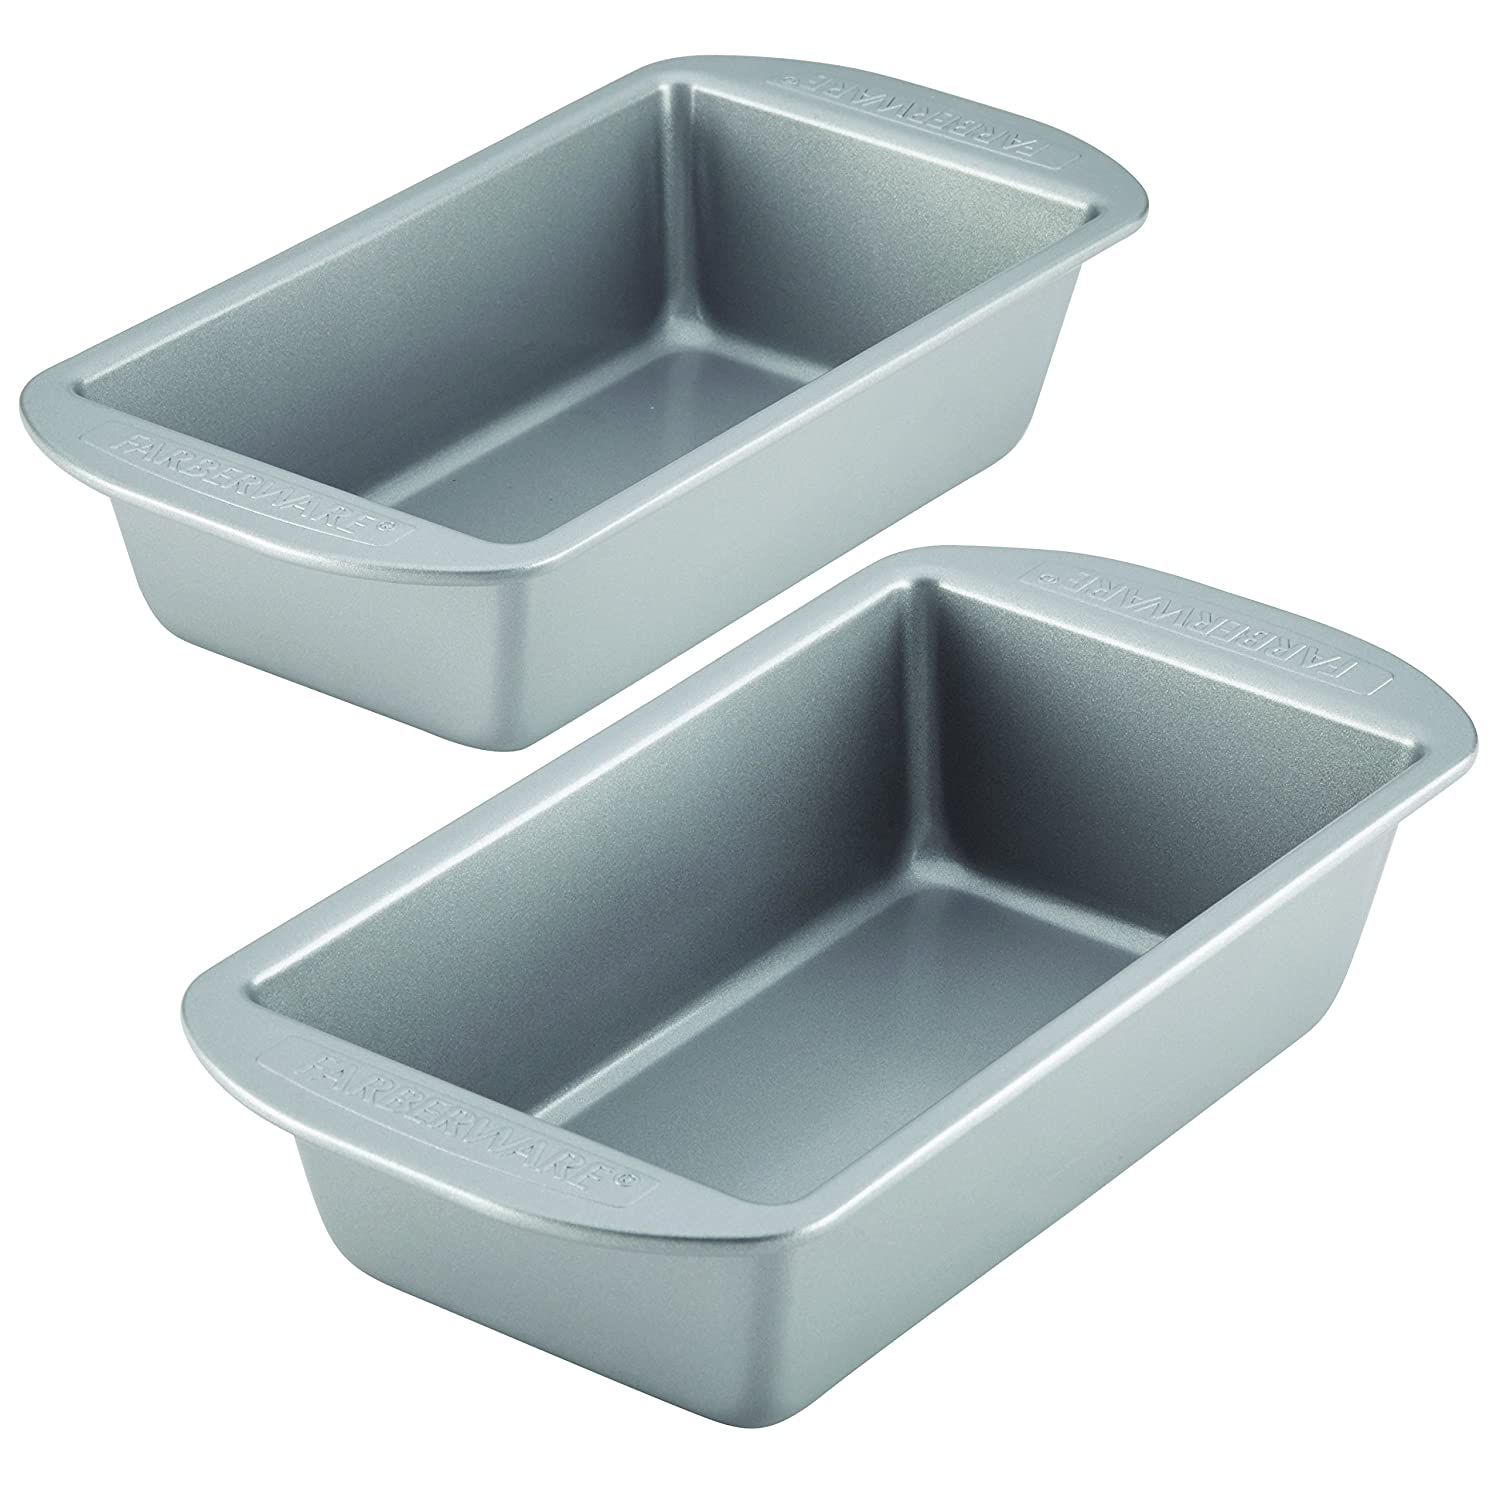 Farberware Nonstick Bakeware Bread and Meat Loaf Pan Set, 2-Piece, Gray 46405